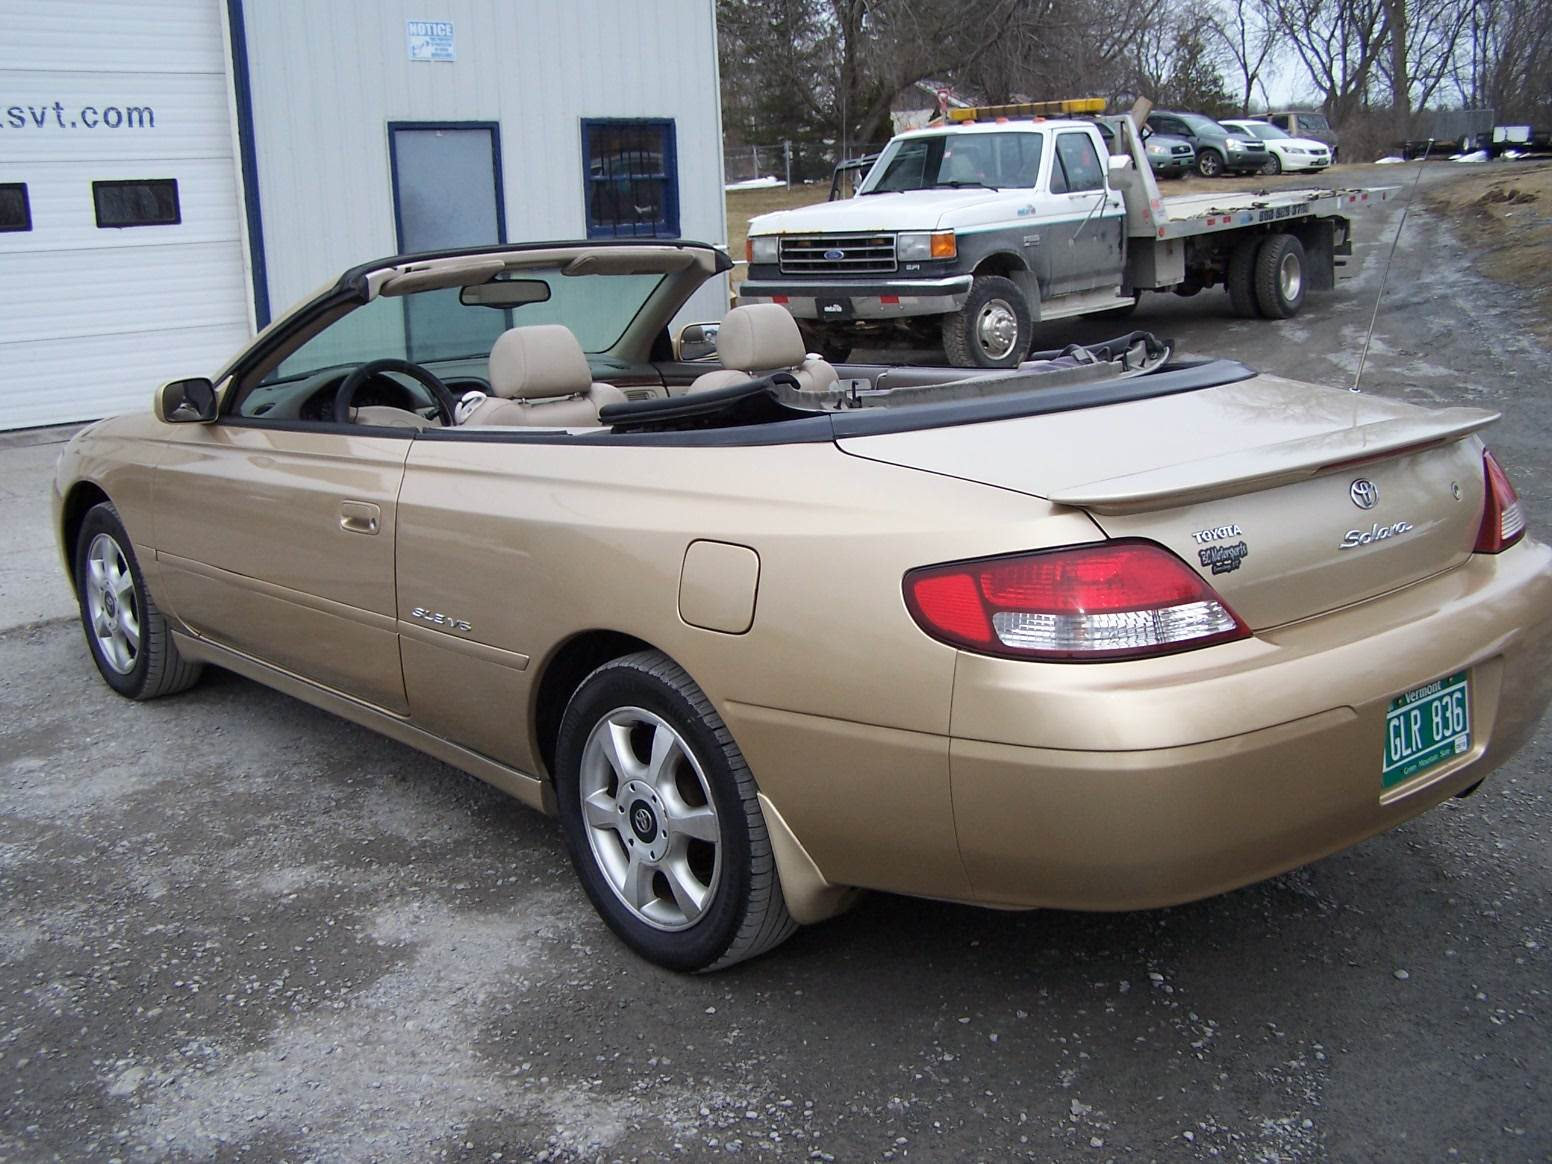 2001 Other Toyota Solara Convertible in Ferrisburg, Vermont